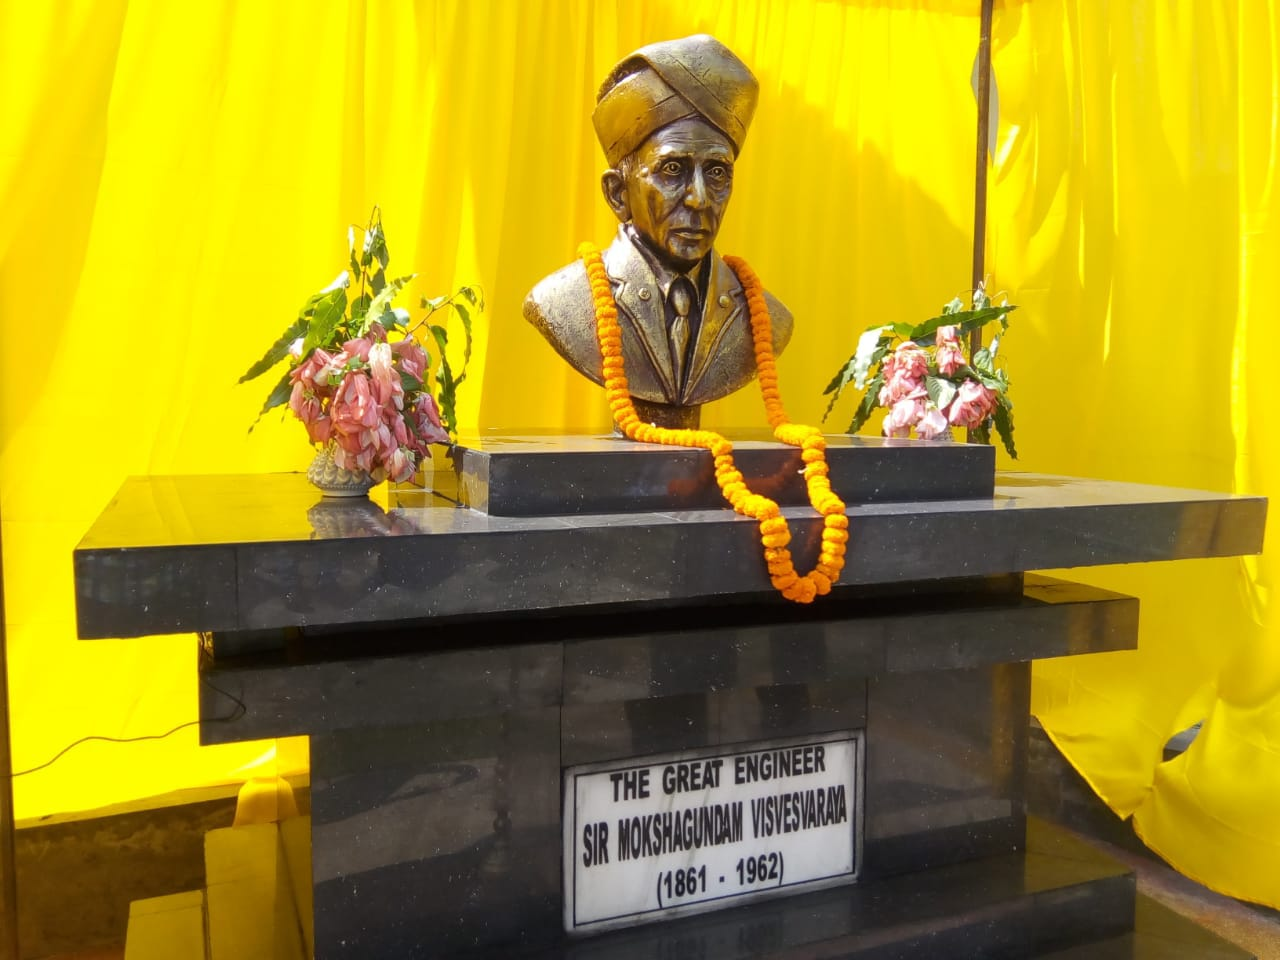 Statue unveiled of Sir Mokshagundam Vishweshvaraya (15 September 1861 – 12 April 1962) on the occasion of Engineer's Day at Silchar Polytechnic